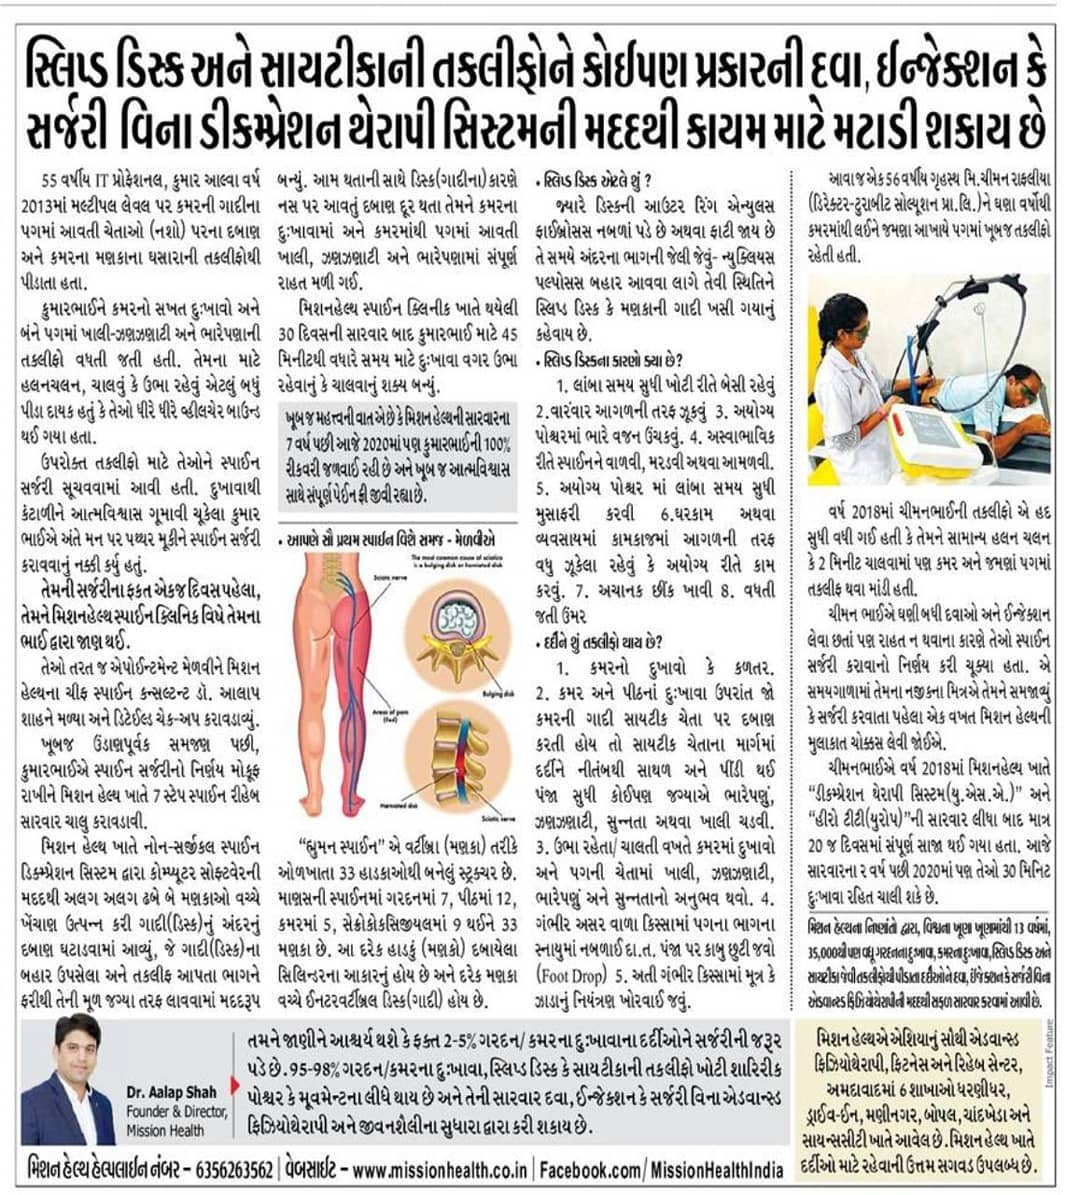 Did You know that 95-98% Neck Pain/Back Pain issues are due to faulty Postures & Movements?  See the Positive Journey of Mr. Kumar Alva & Mr. Chiman Rafaliya @ Mission Health & how even years after the treatment they are living active painfree life... Get rid of Neck Pain, Back Pain, Slipped Disc, Arm Pain, Sciatica forever with Decompression Therapy System @ Mission Health... More than 35000 spine patients are treated @ Mission Health.  Call 6356263562 Visit www.missionhealth.co.in  #MissionHealth #Physiotherapy #Spineclinic #DecompressionTherapySystem #ThealTherapy #HiroTT #SlippedDiscDoNotPanic #Ergonomics #RehabSuites #MovementIsLife